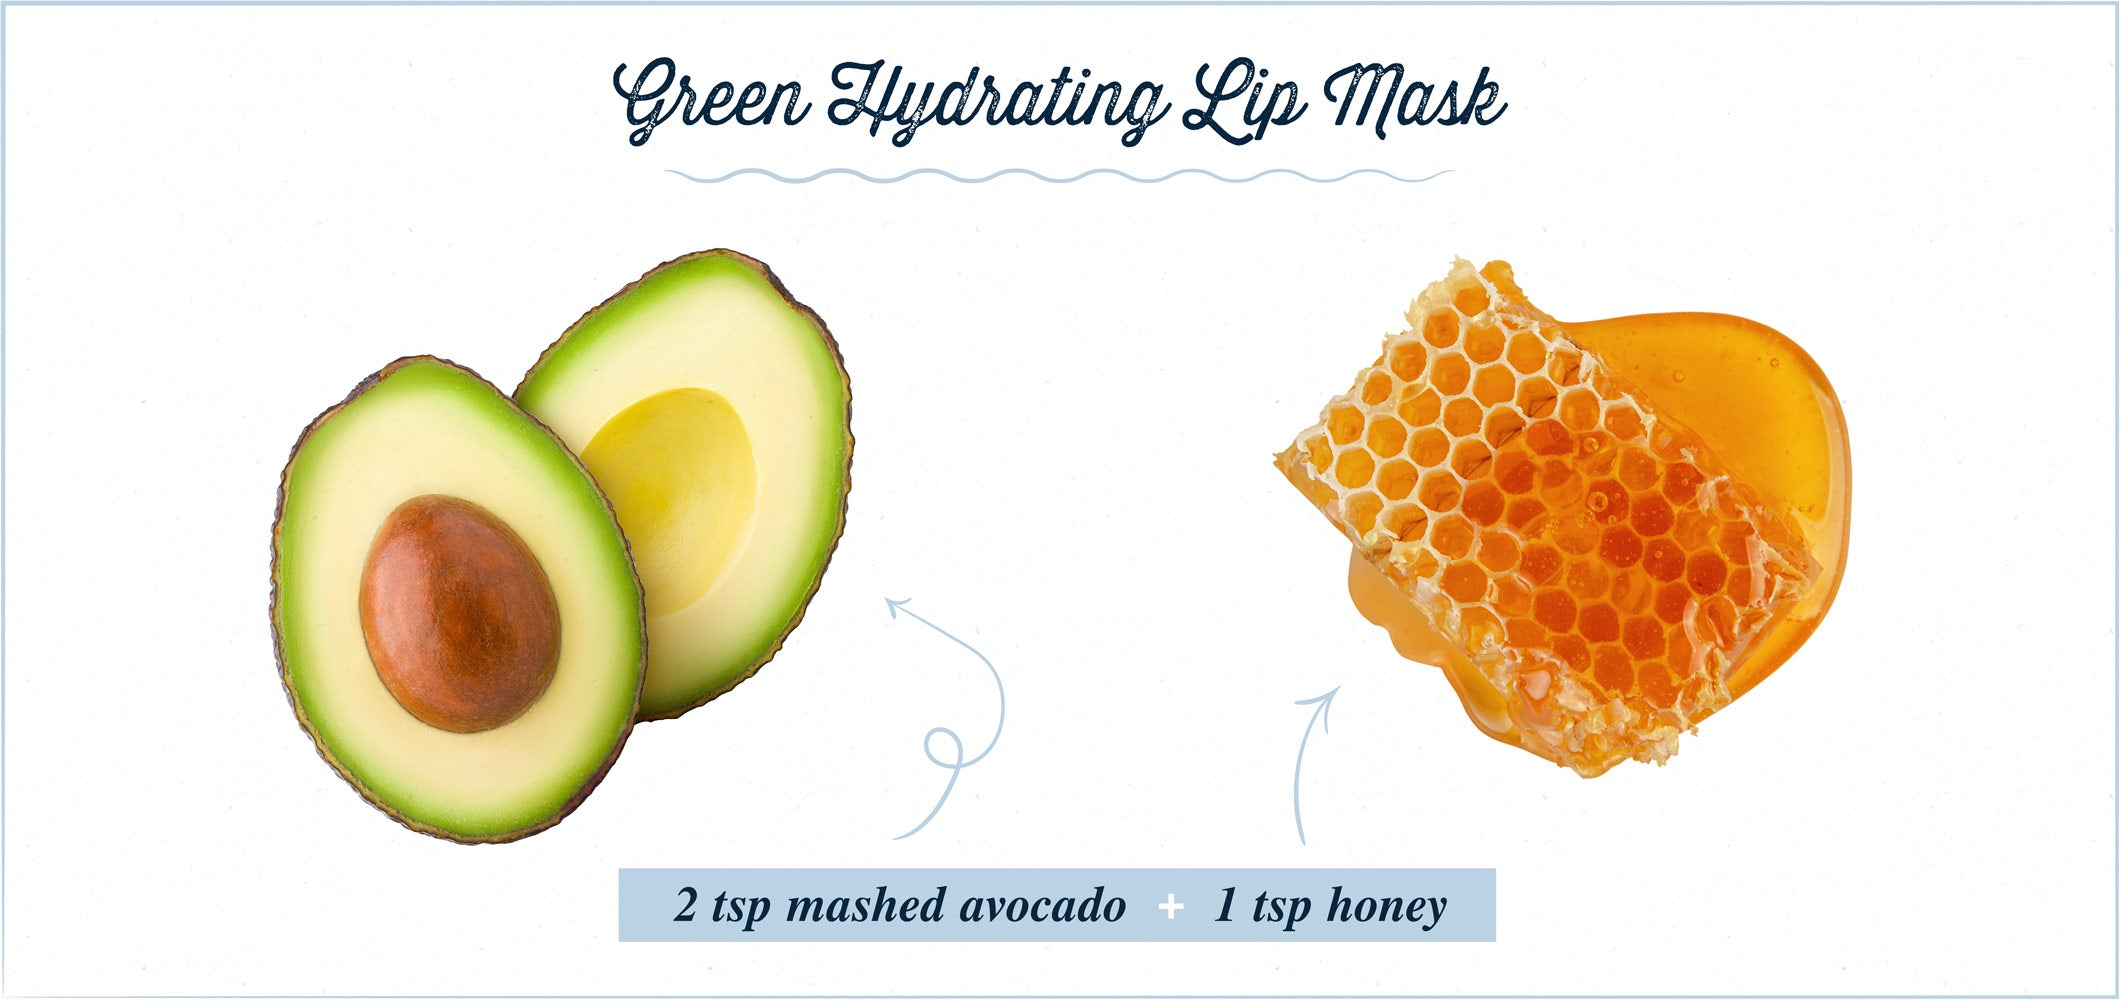 green hydrating lip mask ingredients